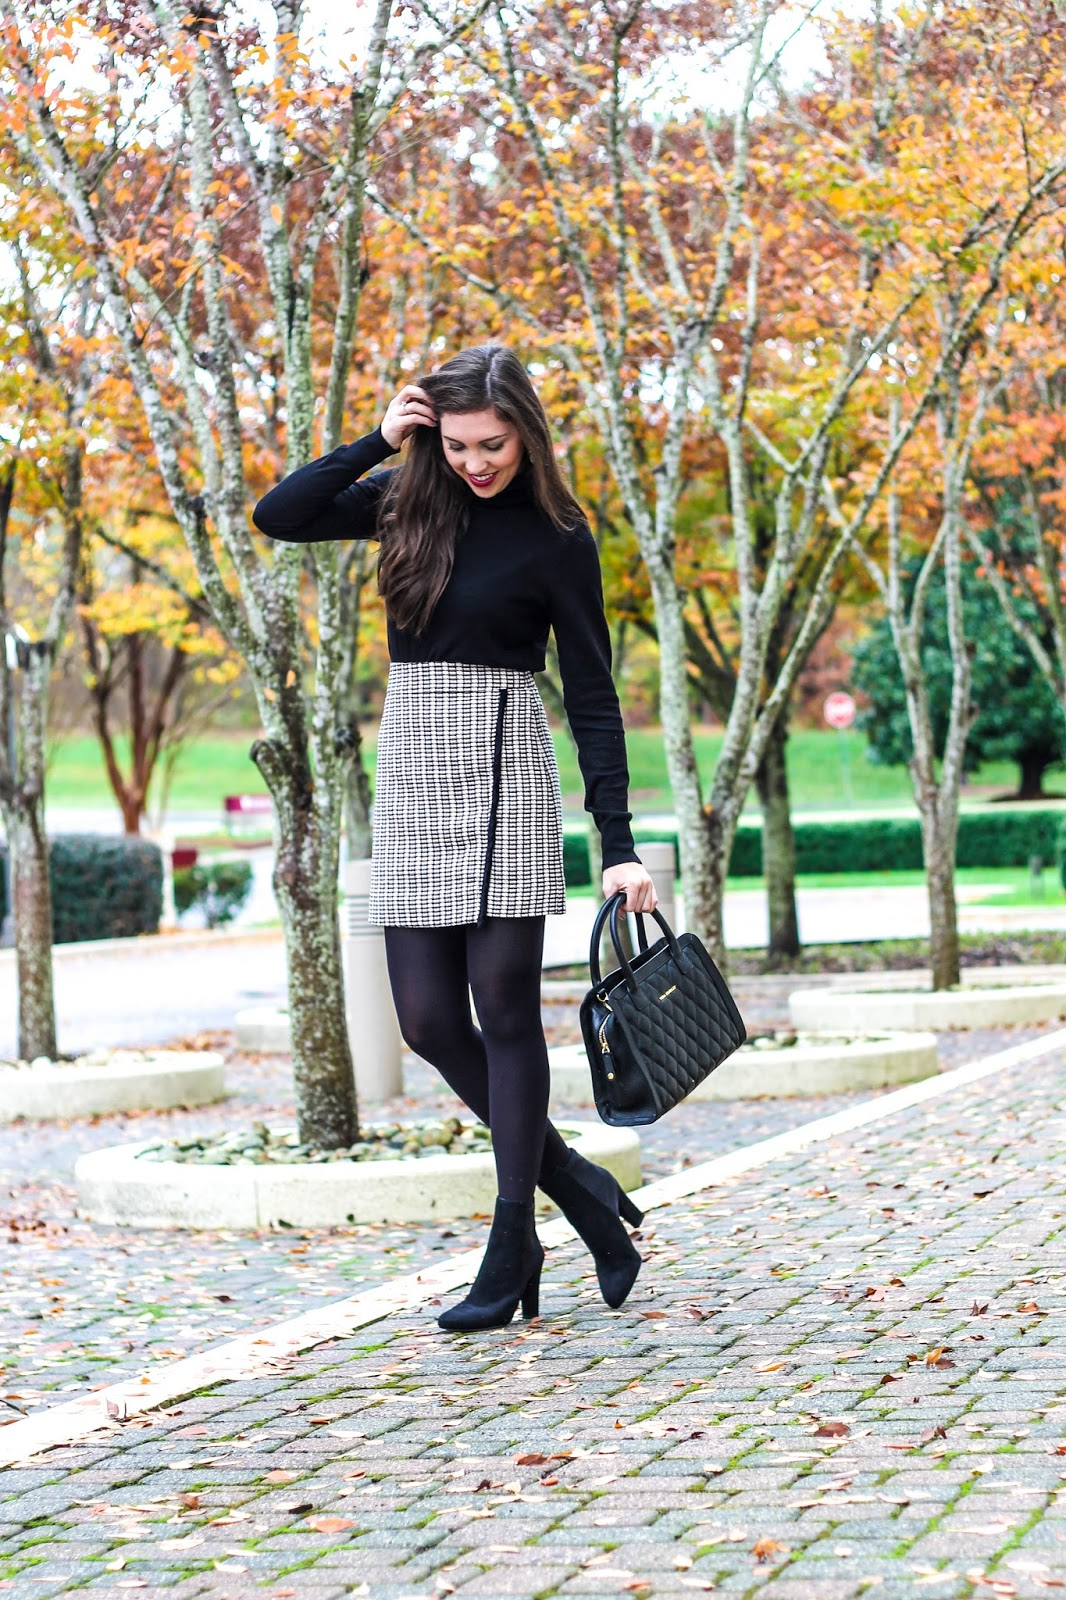 Tweed Mini Skirt, Highwaisted Skirt, Classic Look for fall, work appropriate outfit for fall, work appropriate outfit for winter, winter outfit, cute thanksgiving outfit, black turtleneck sweater, jcrew skirt, black suede ivanka trump booties, vera bradley satchel, fashion blogger, fashion blog, style blogger, pretty in the pines, black tights with skirt, fall trends, winter trends